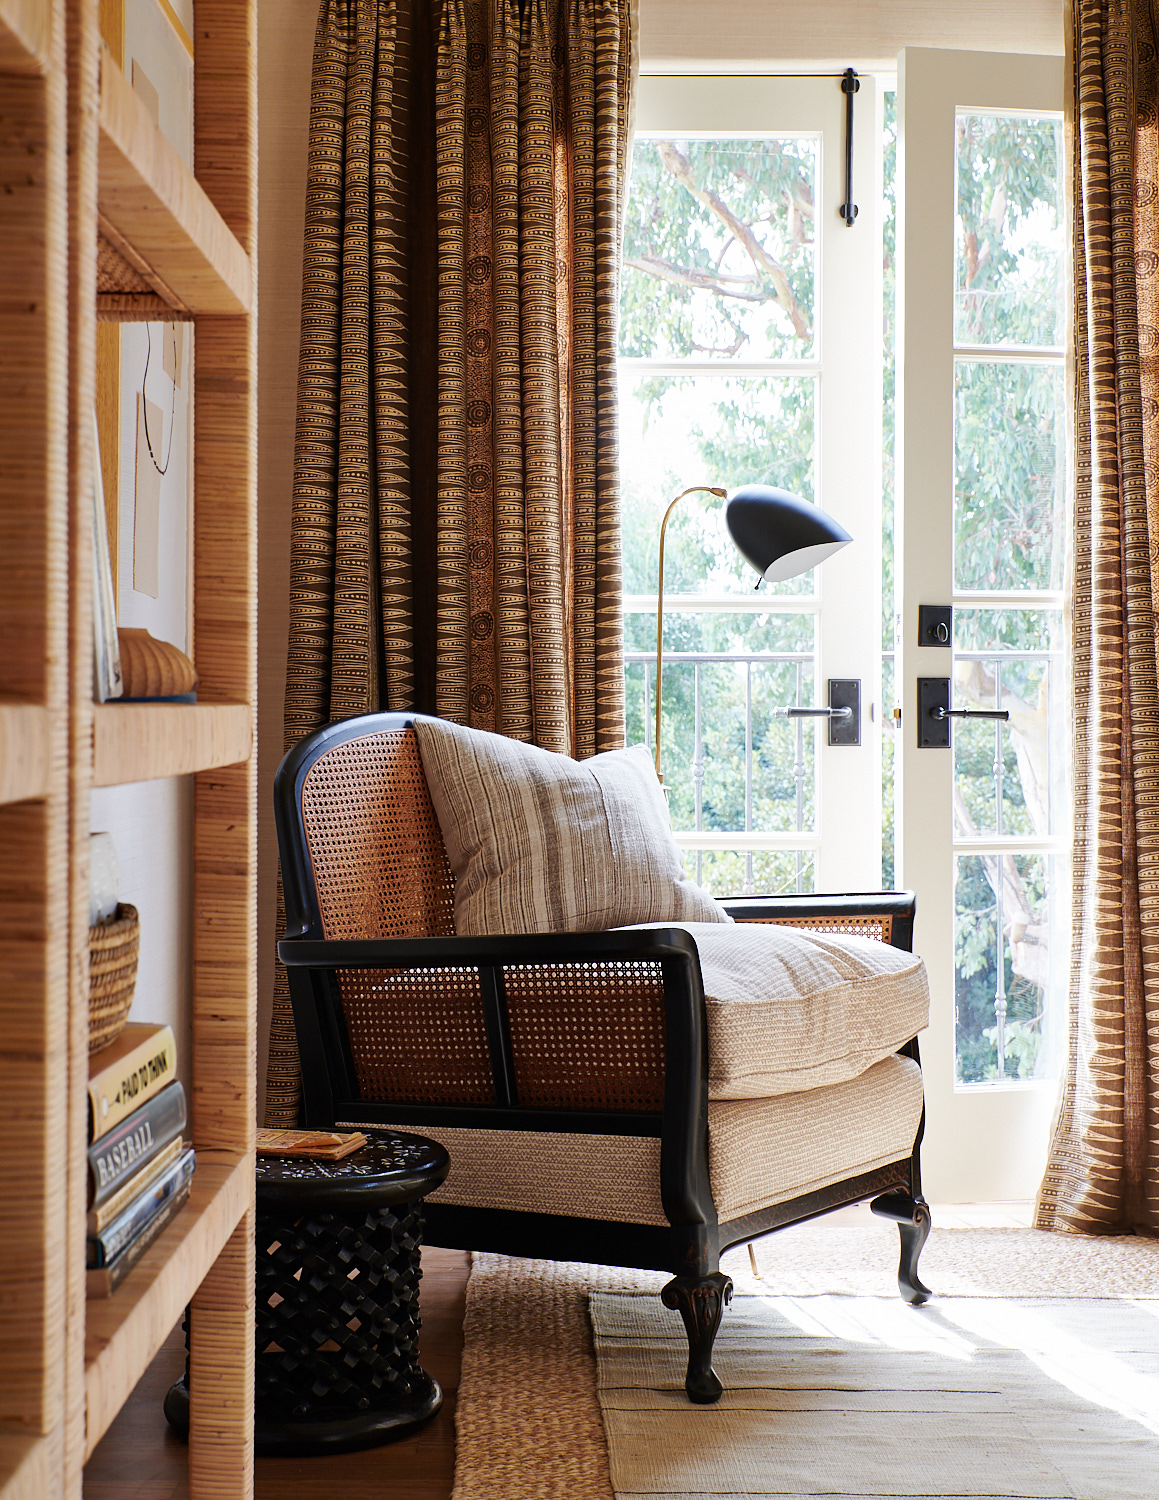 Upholstered wicker chair with added cushion and back pillows, and window drapes